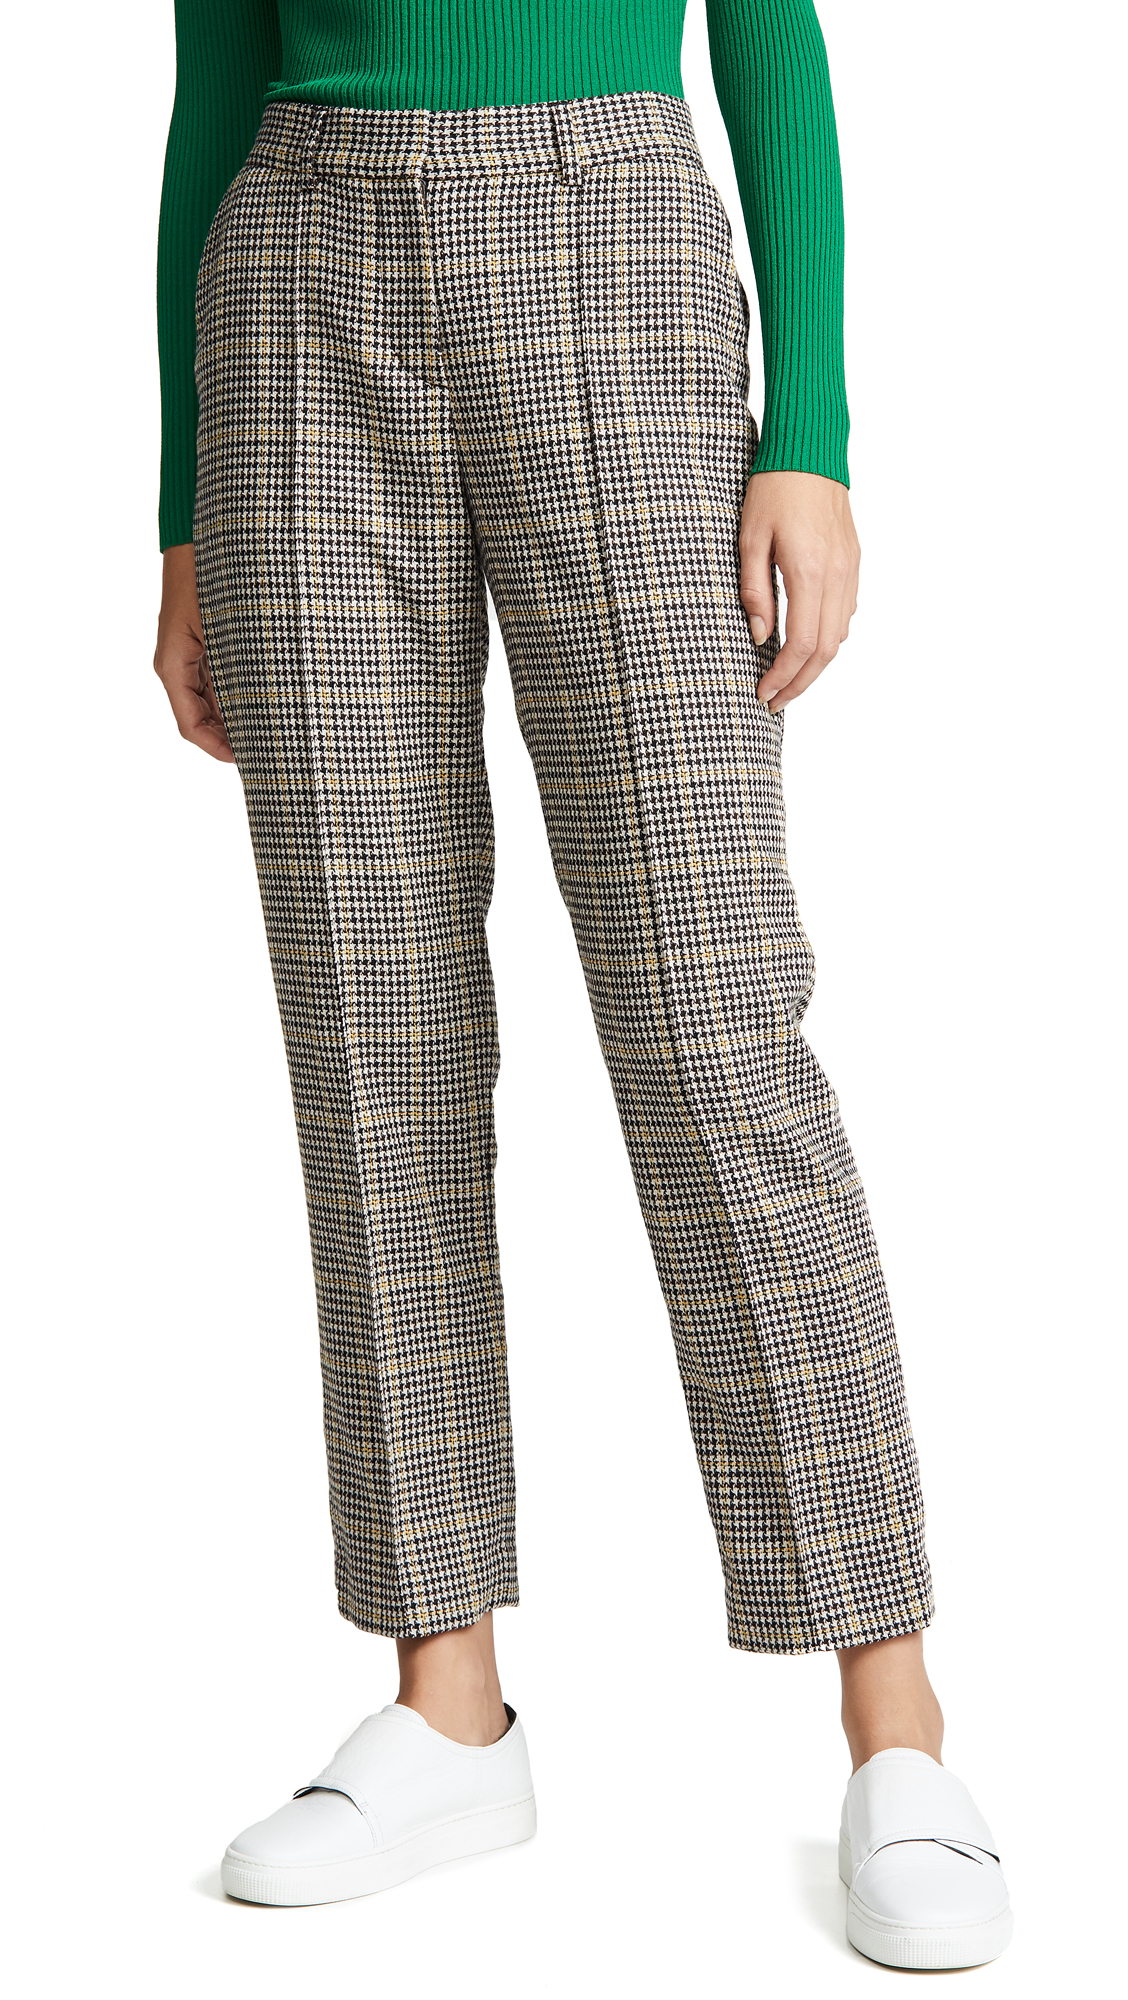 Heartmade Nesso Pants In Check